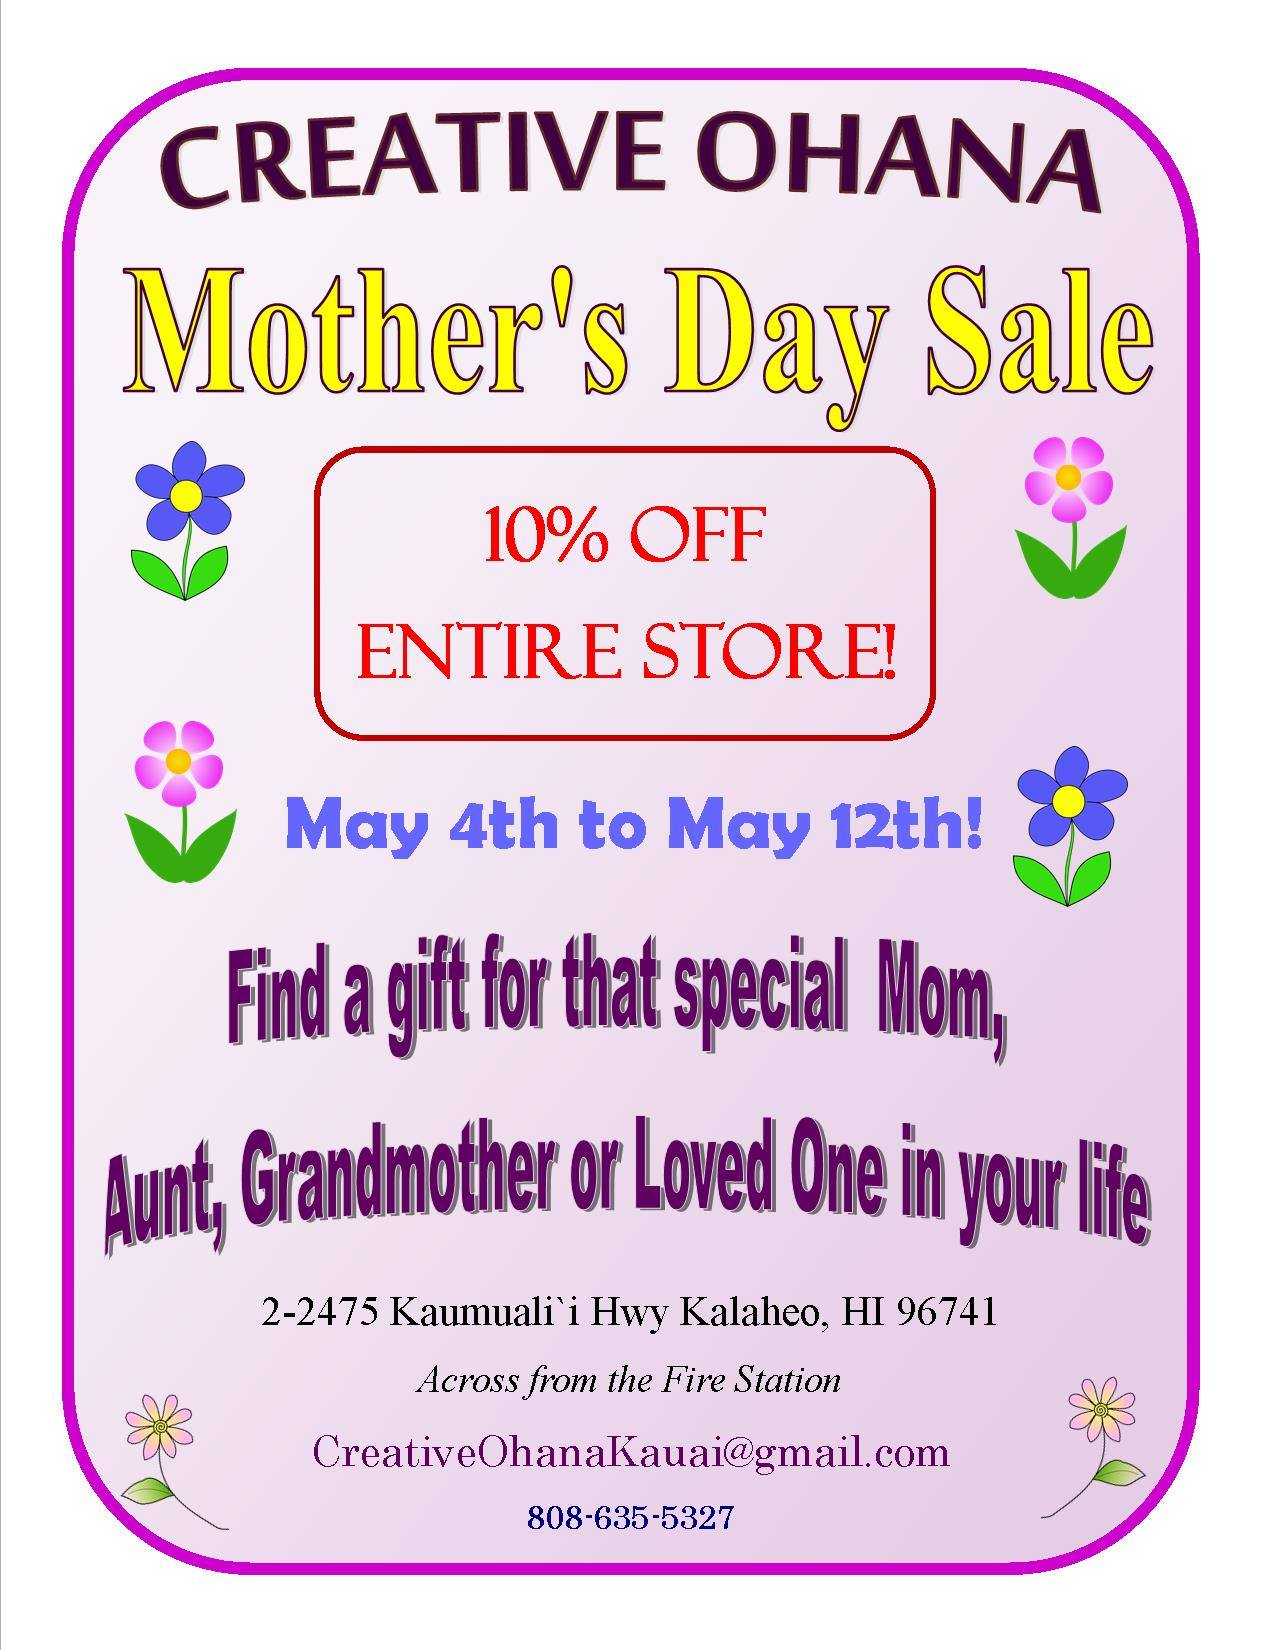 Mother's Day Sale - Creative Ohana Kauai